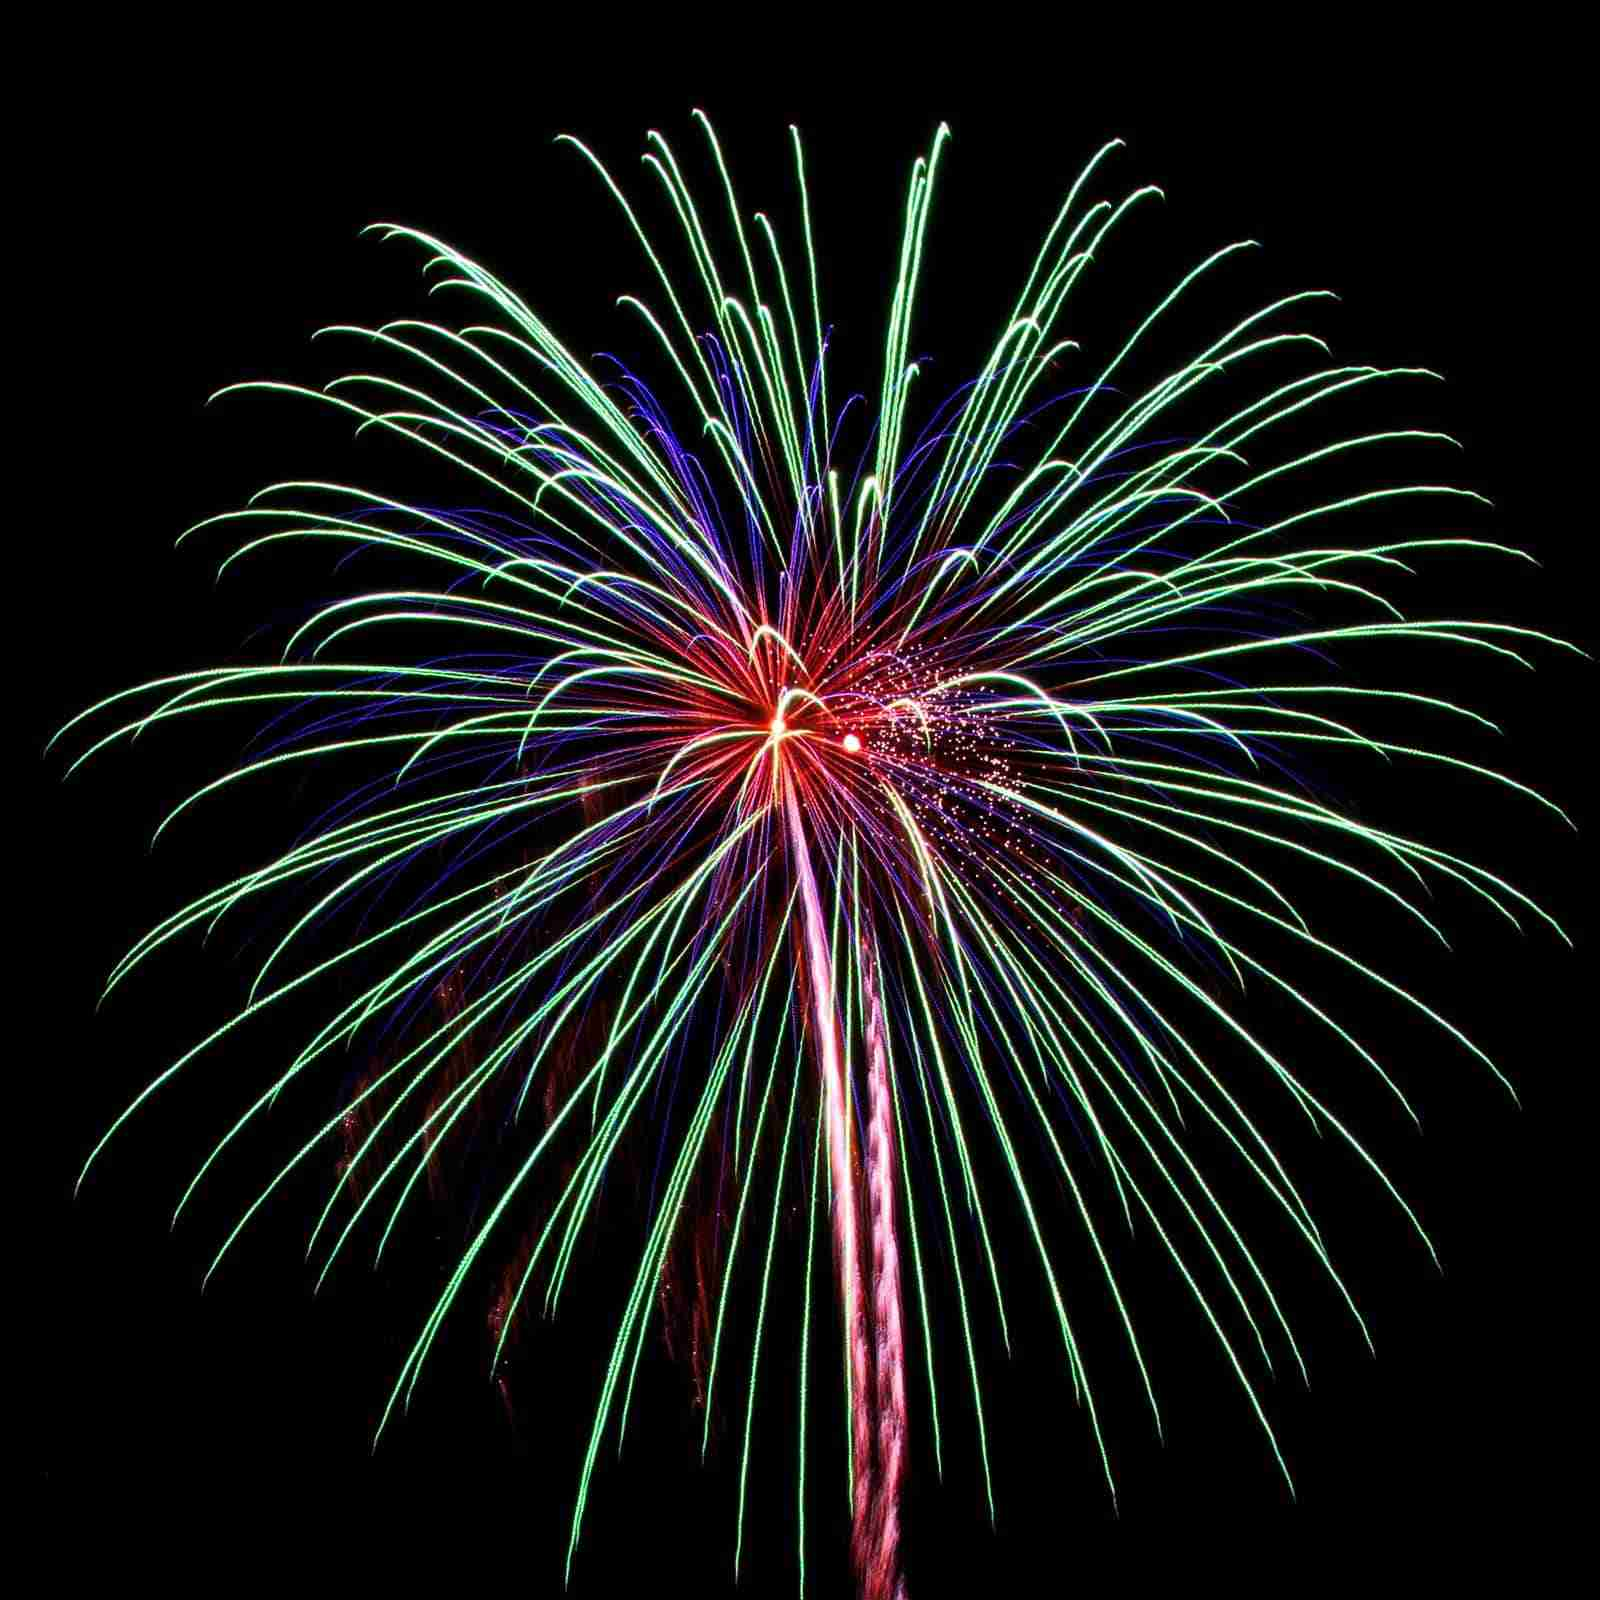 Cape Cod Fireworks - Cape Cod Events - rainbow